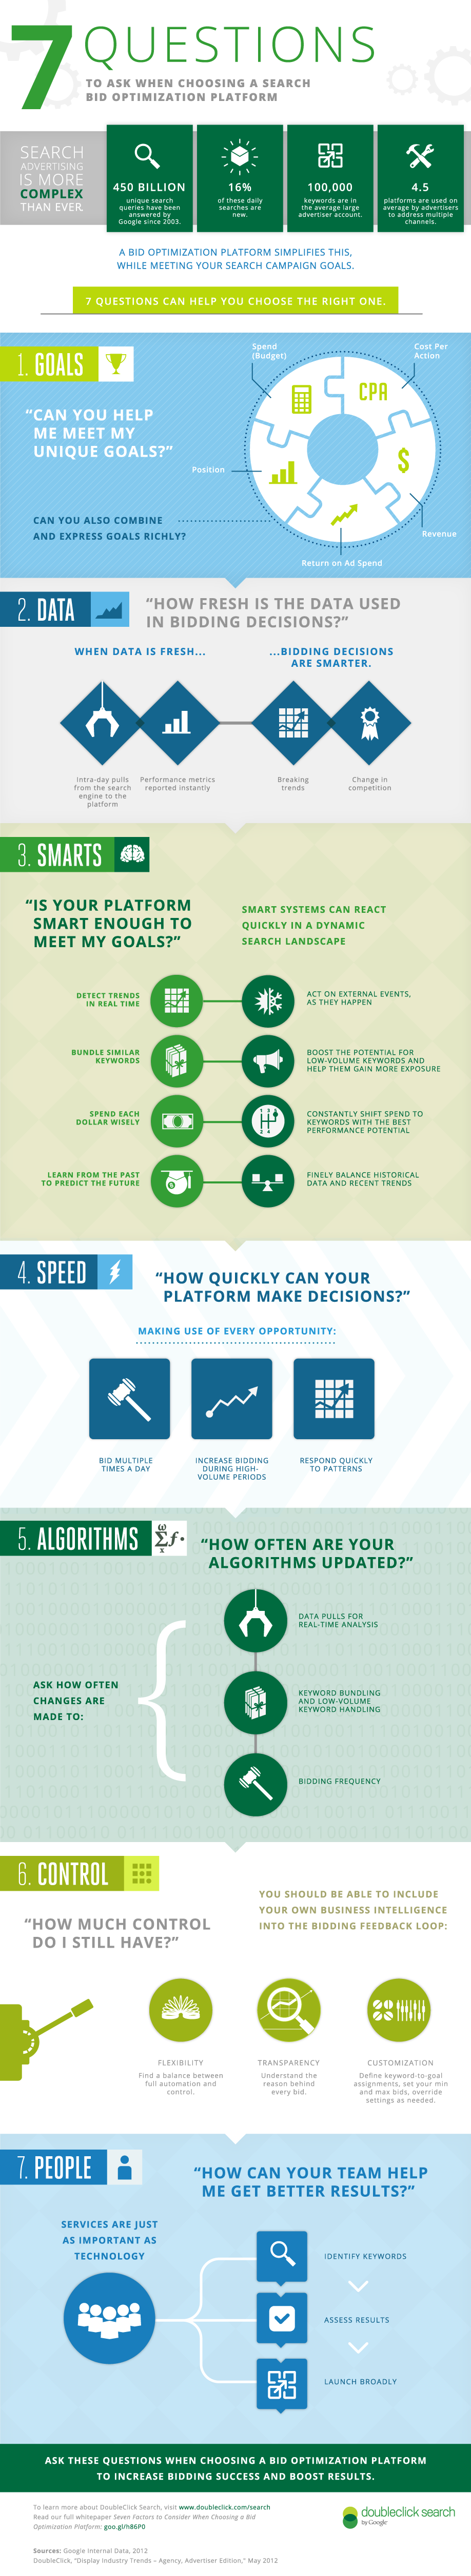 Infographic: Bid Optimization